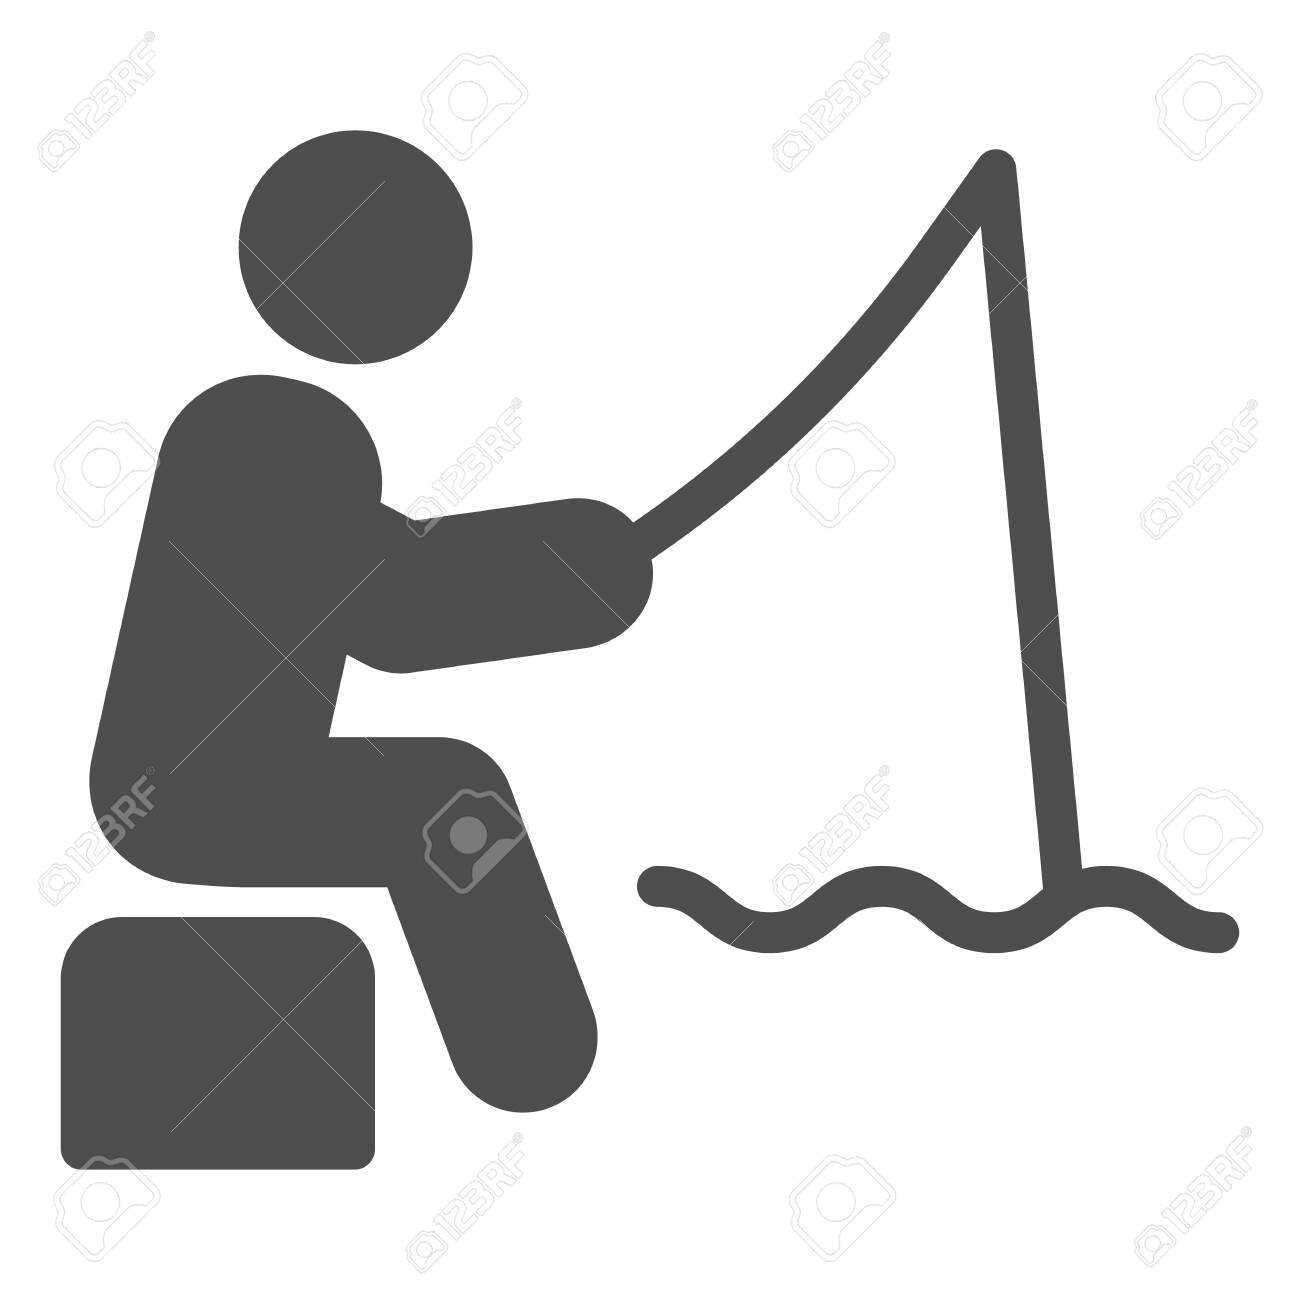 fisheman solid icon fishing man on the river vector illustration royalty free cliparts vectors and stock illustration image 130847833 123rf com